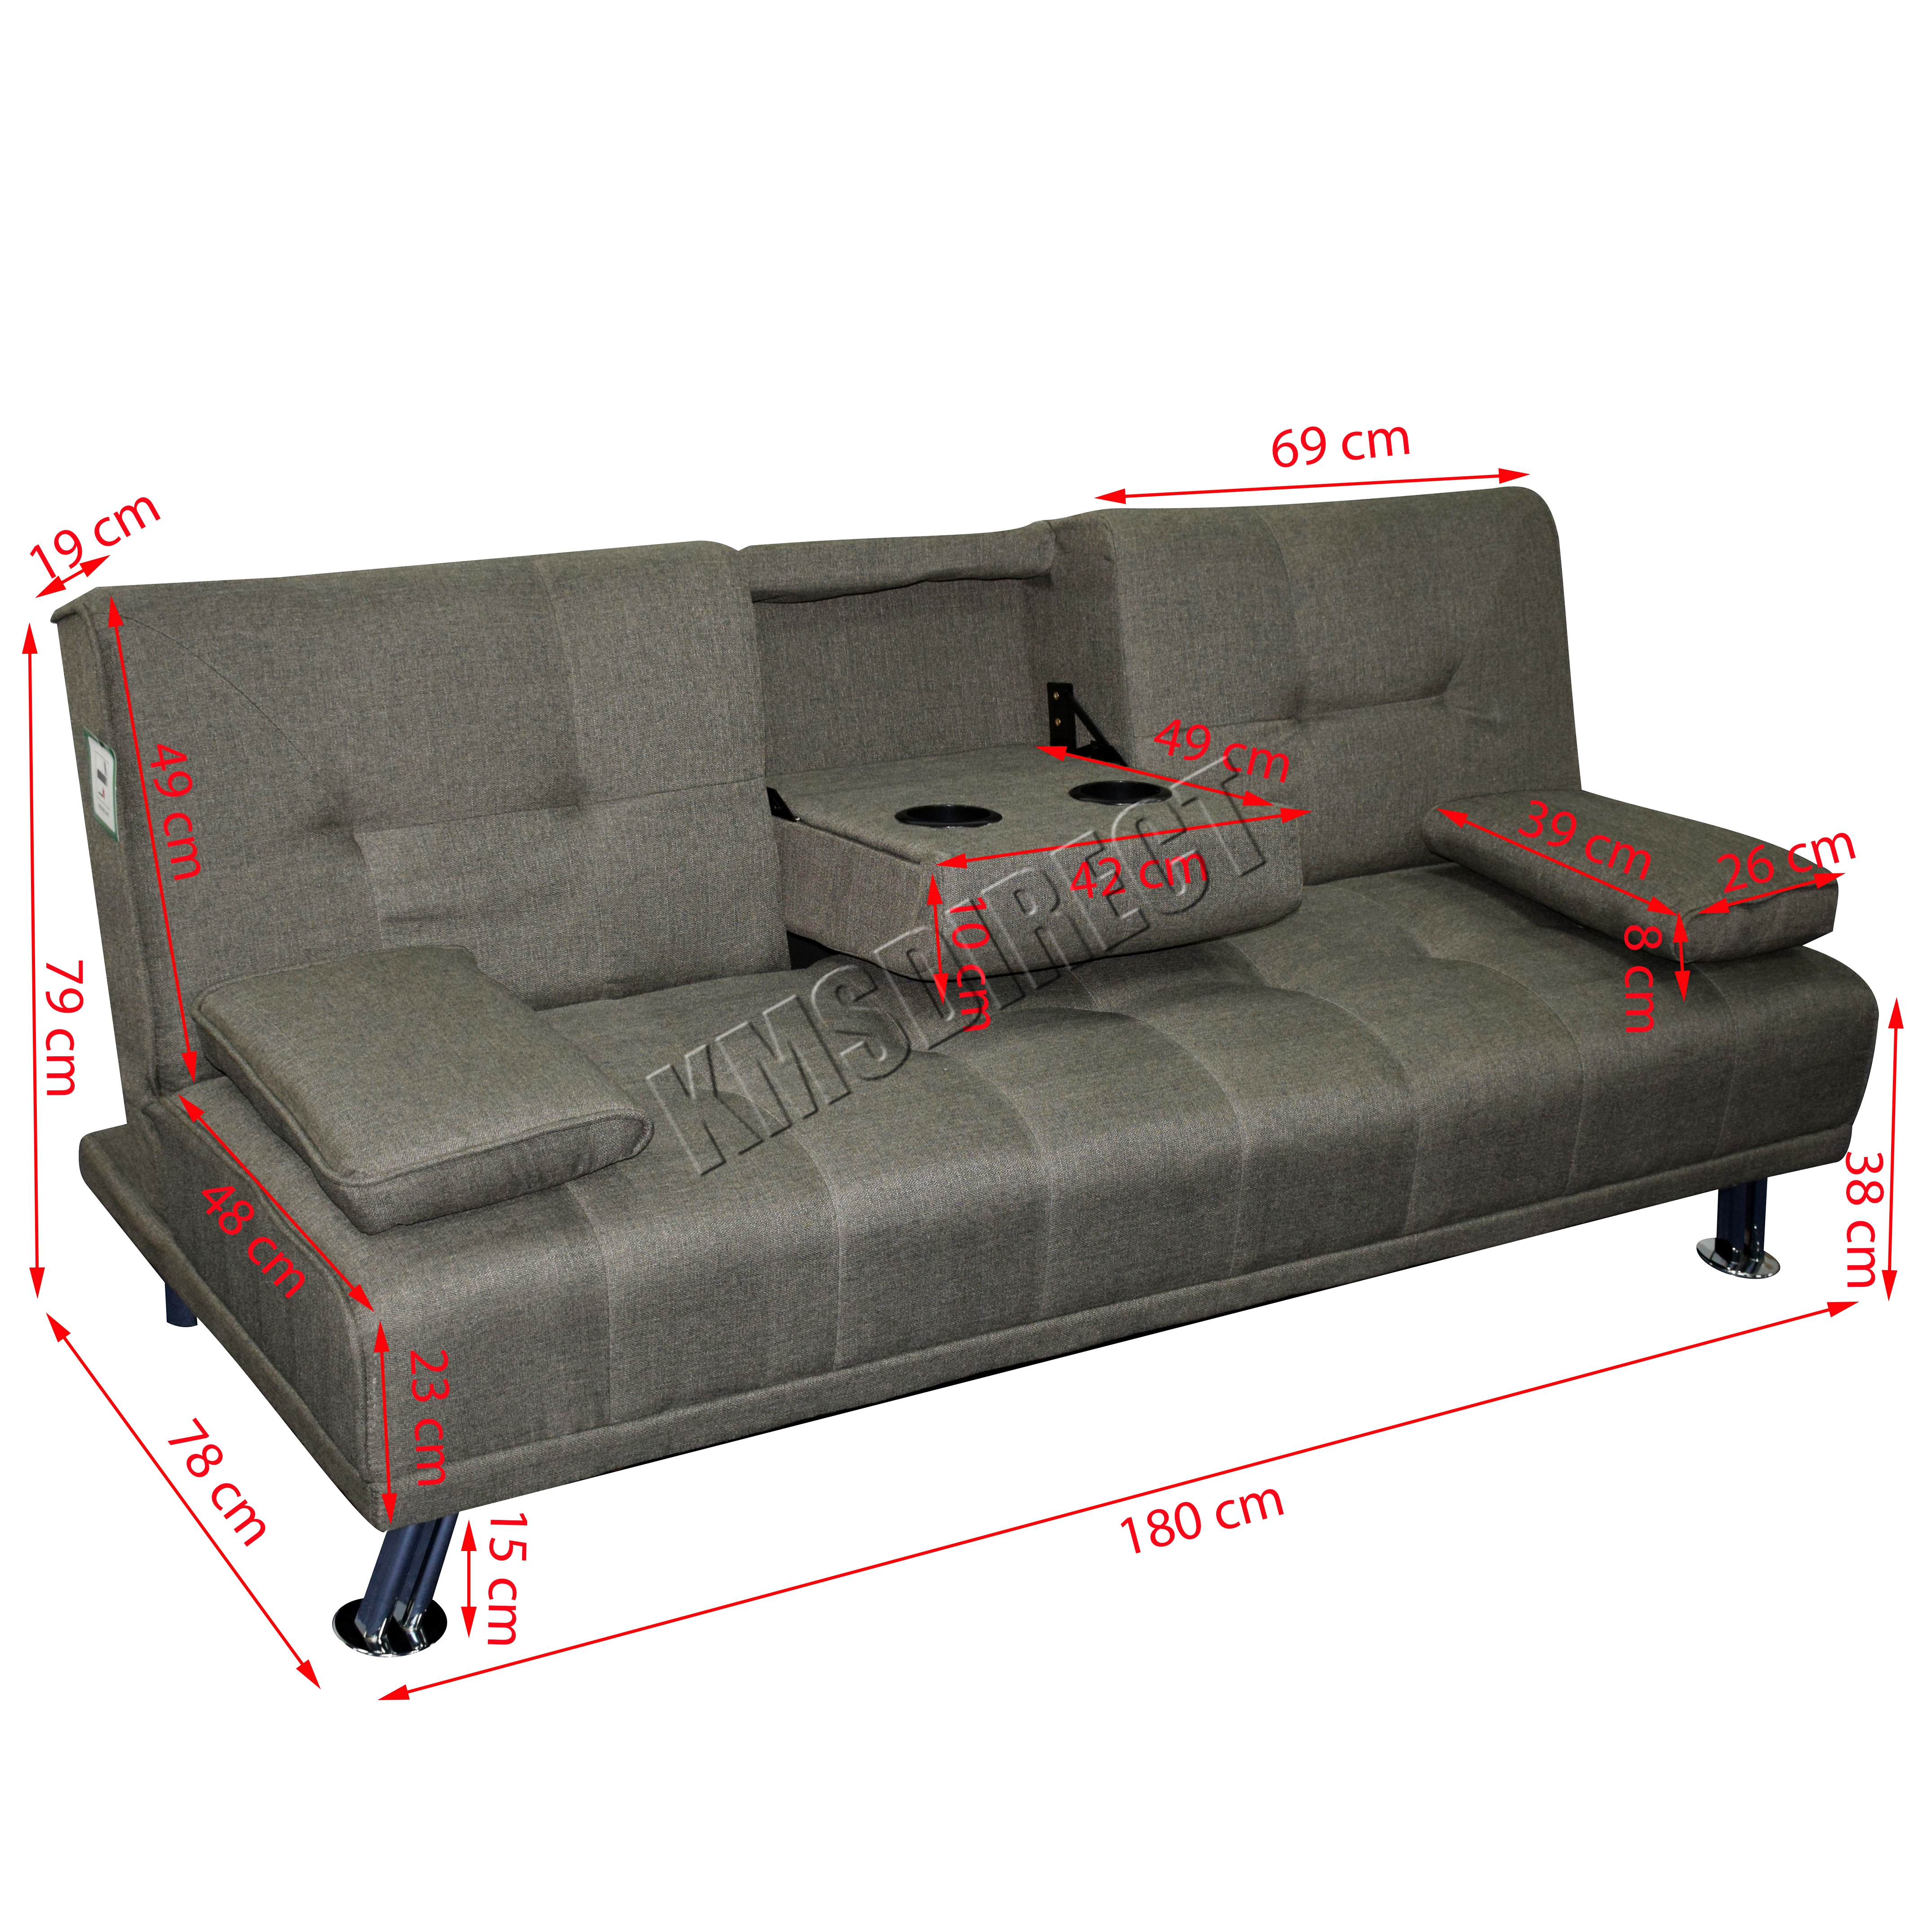 Foxhunter fabric manhattan sofa bed recliner 3 seater for Sofa bed 180cm